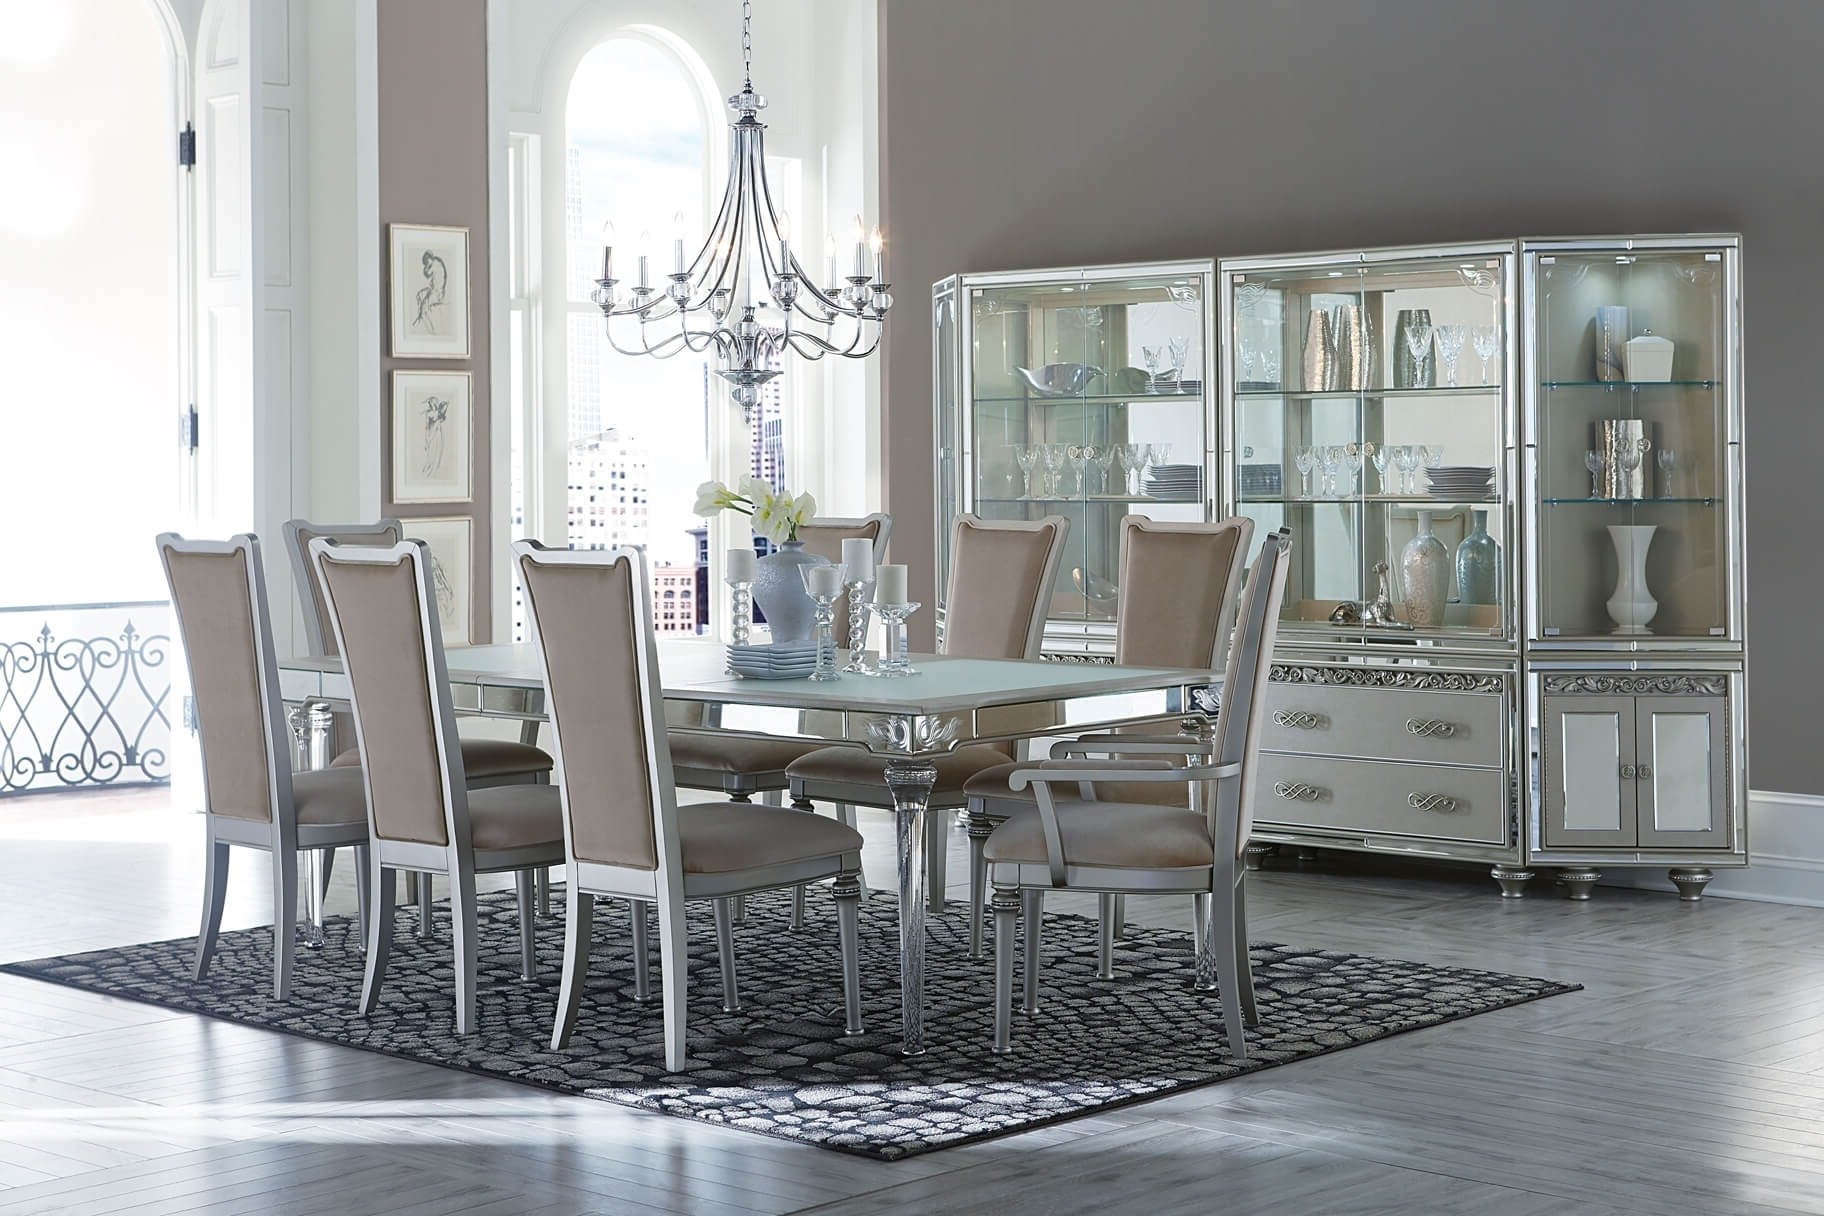 Well Liked Crystal Dining Tables Within Michael Amini Bel Air Park Crystal Dining Set – Usa Warehouse Furniture (View 5 of 25)